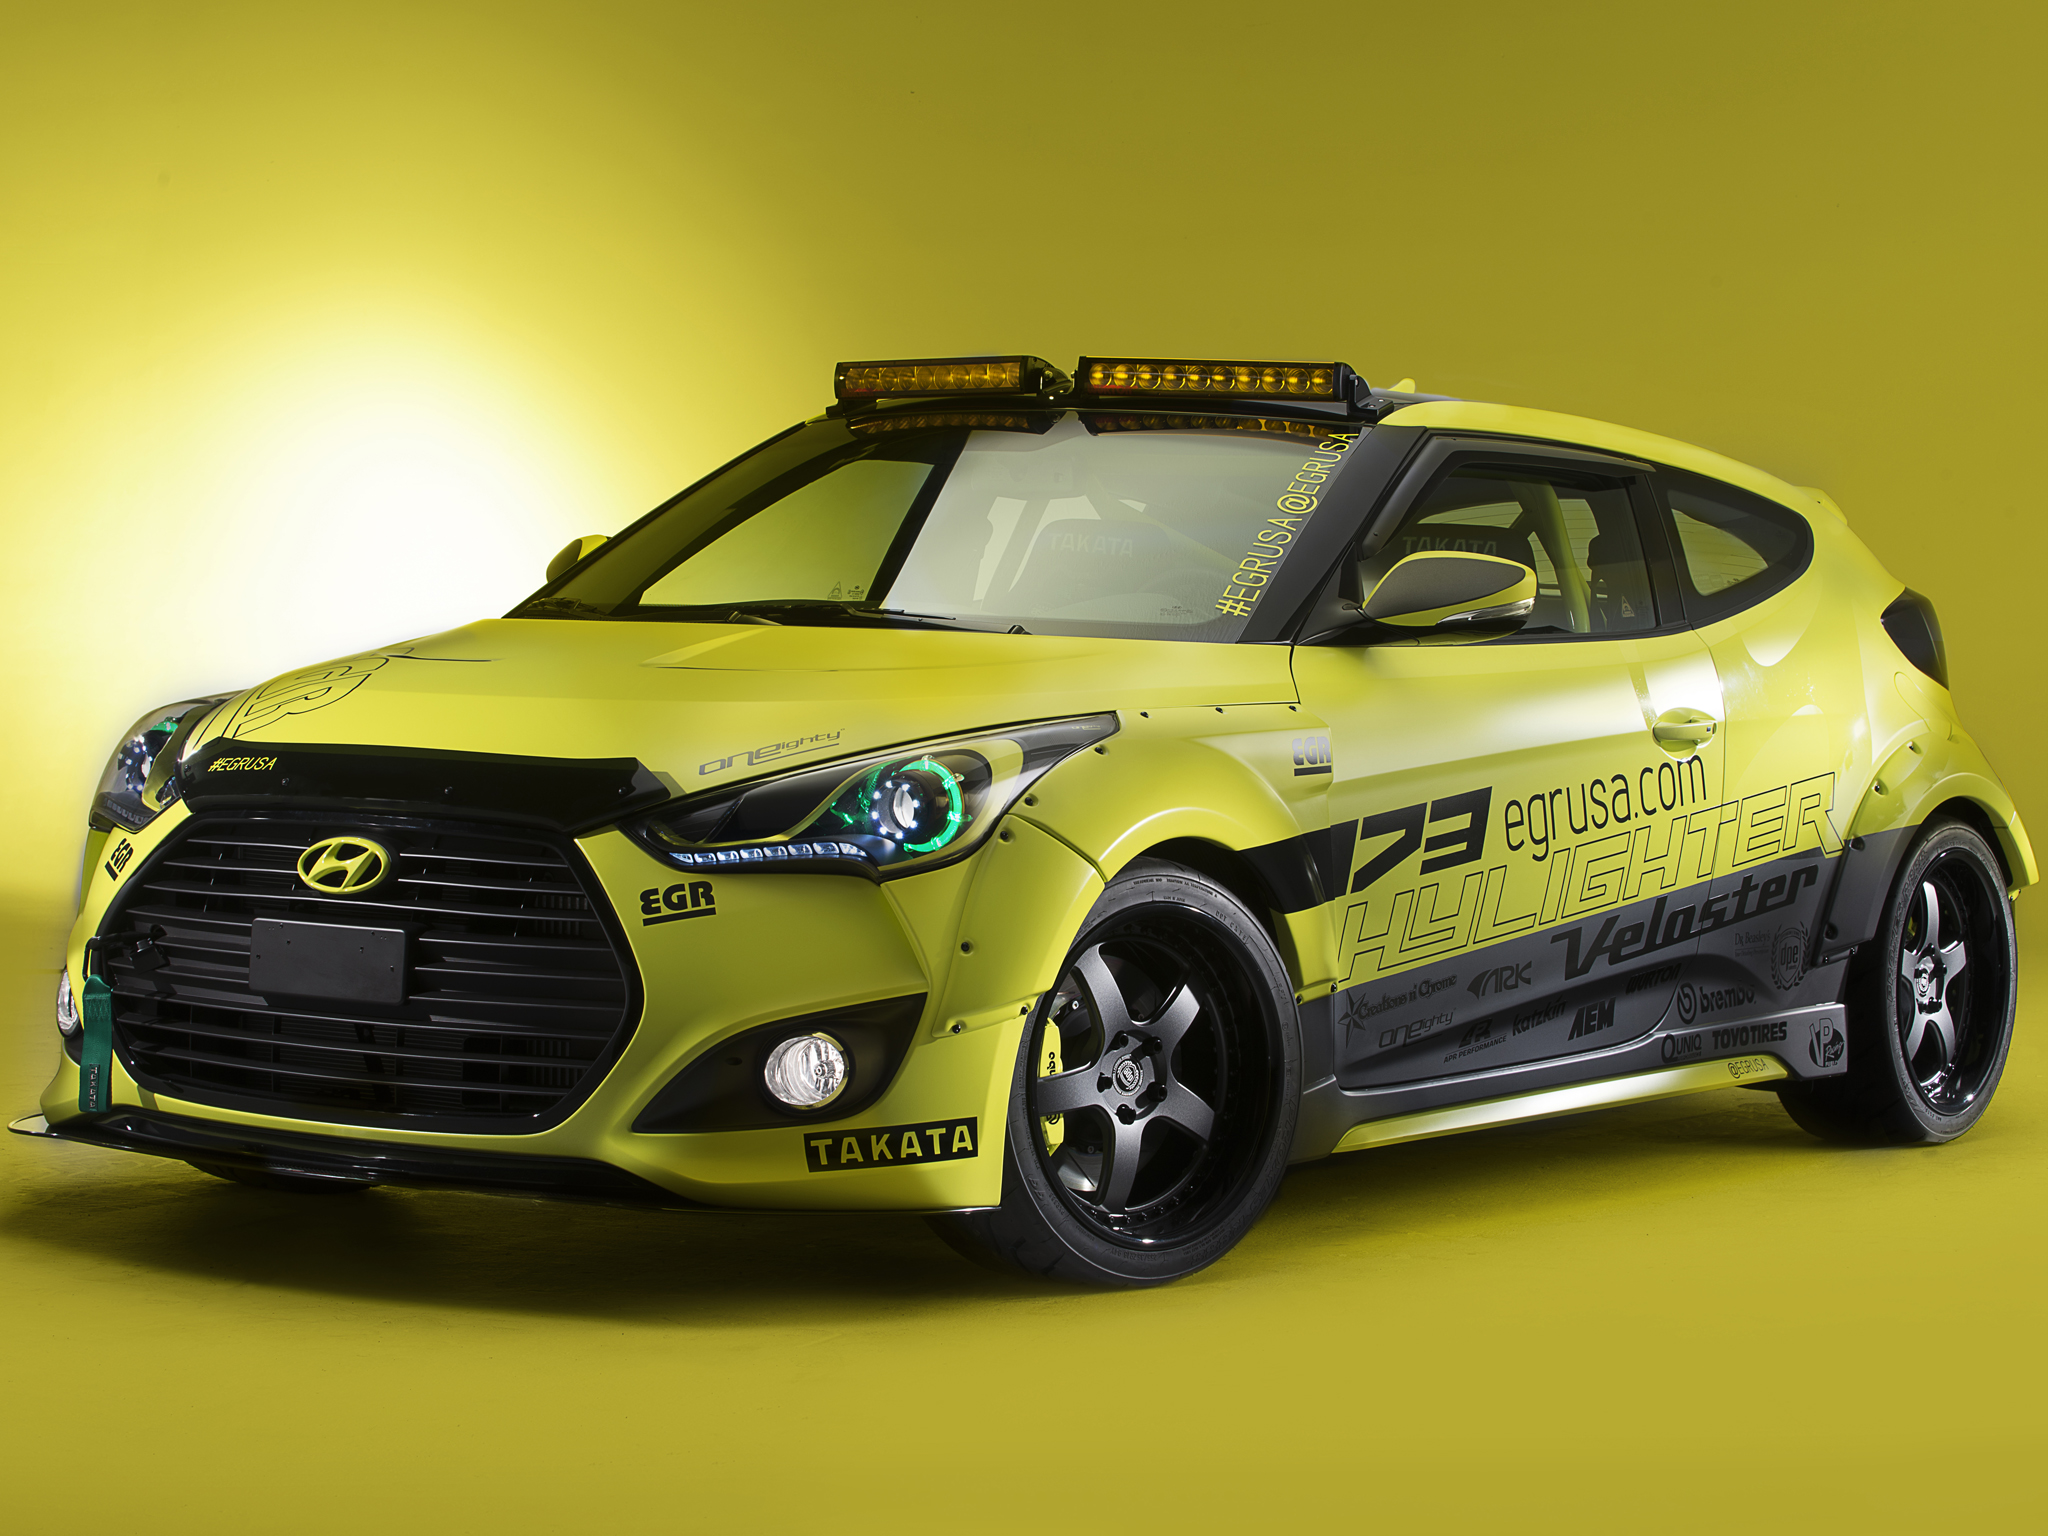 2013 hyundai veloster turbo night racer by egr tuning h. Black Bedroom Furniture Sets. Home Design Ideas